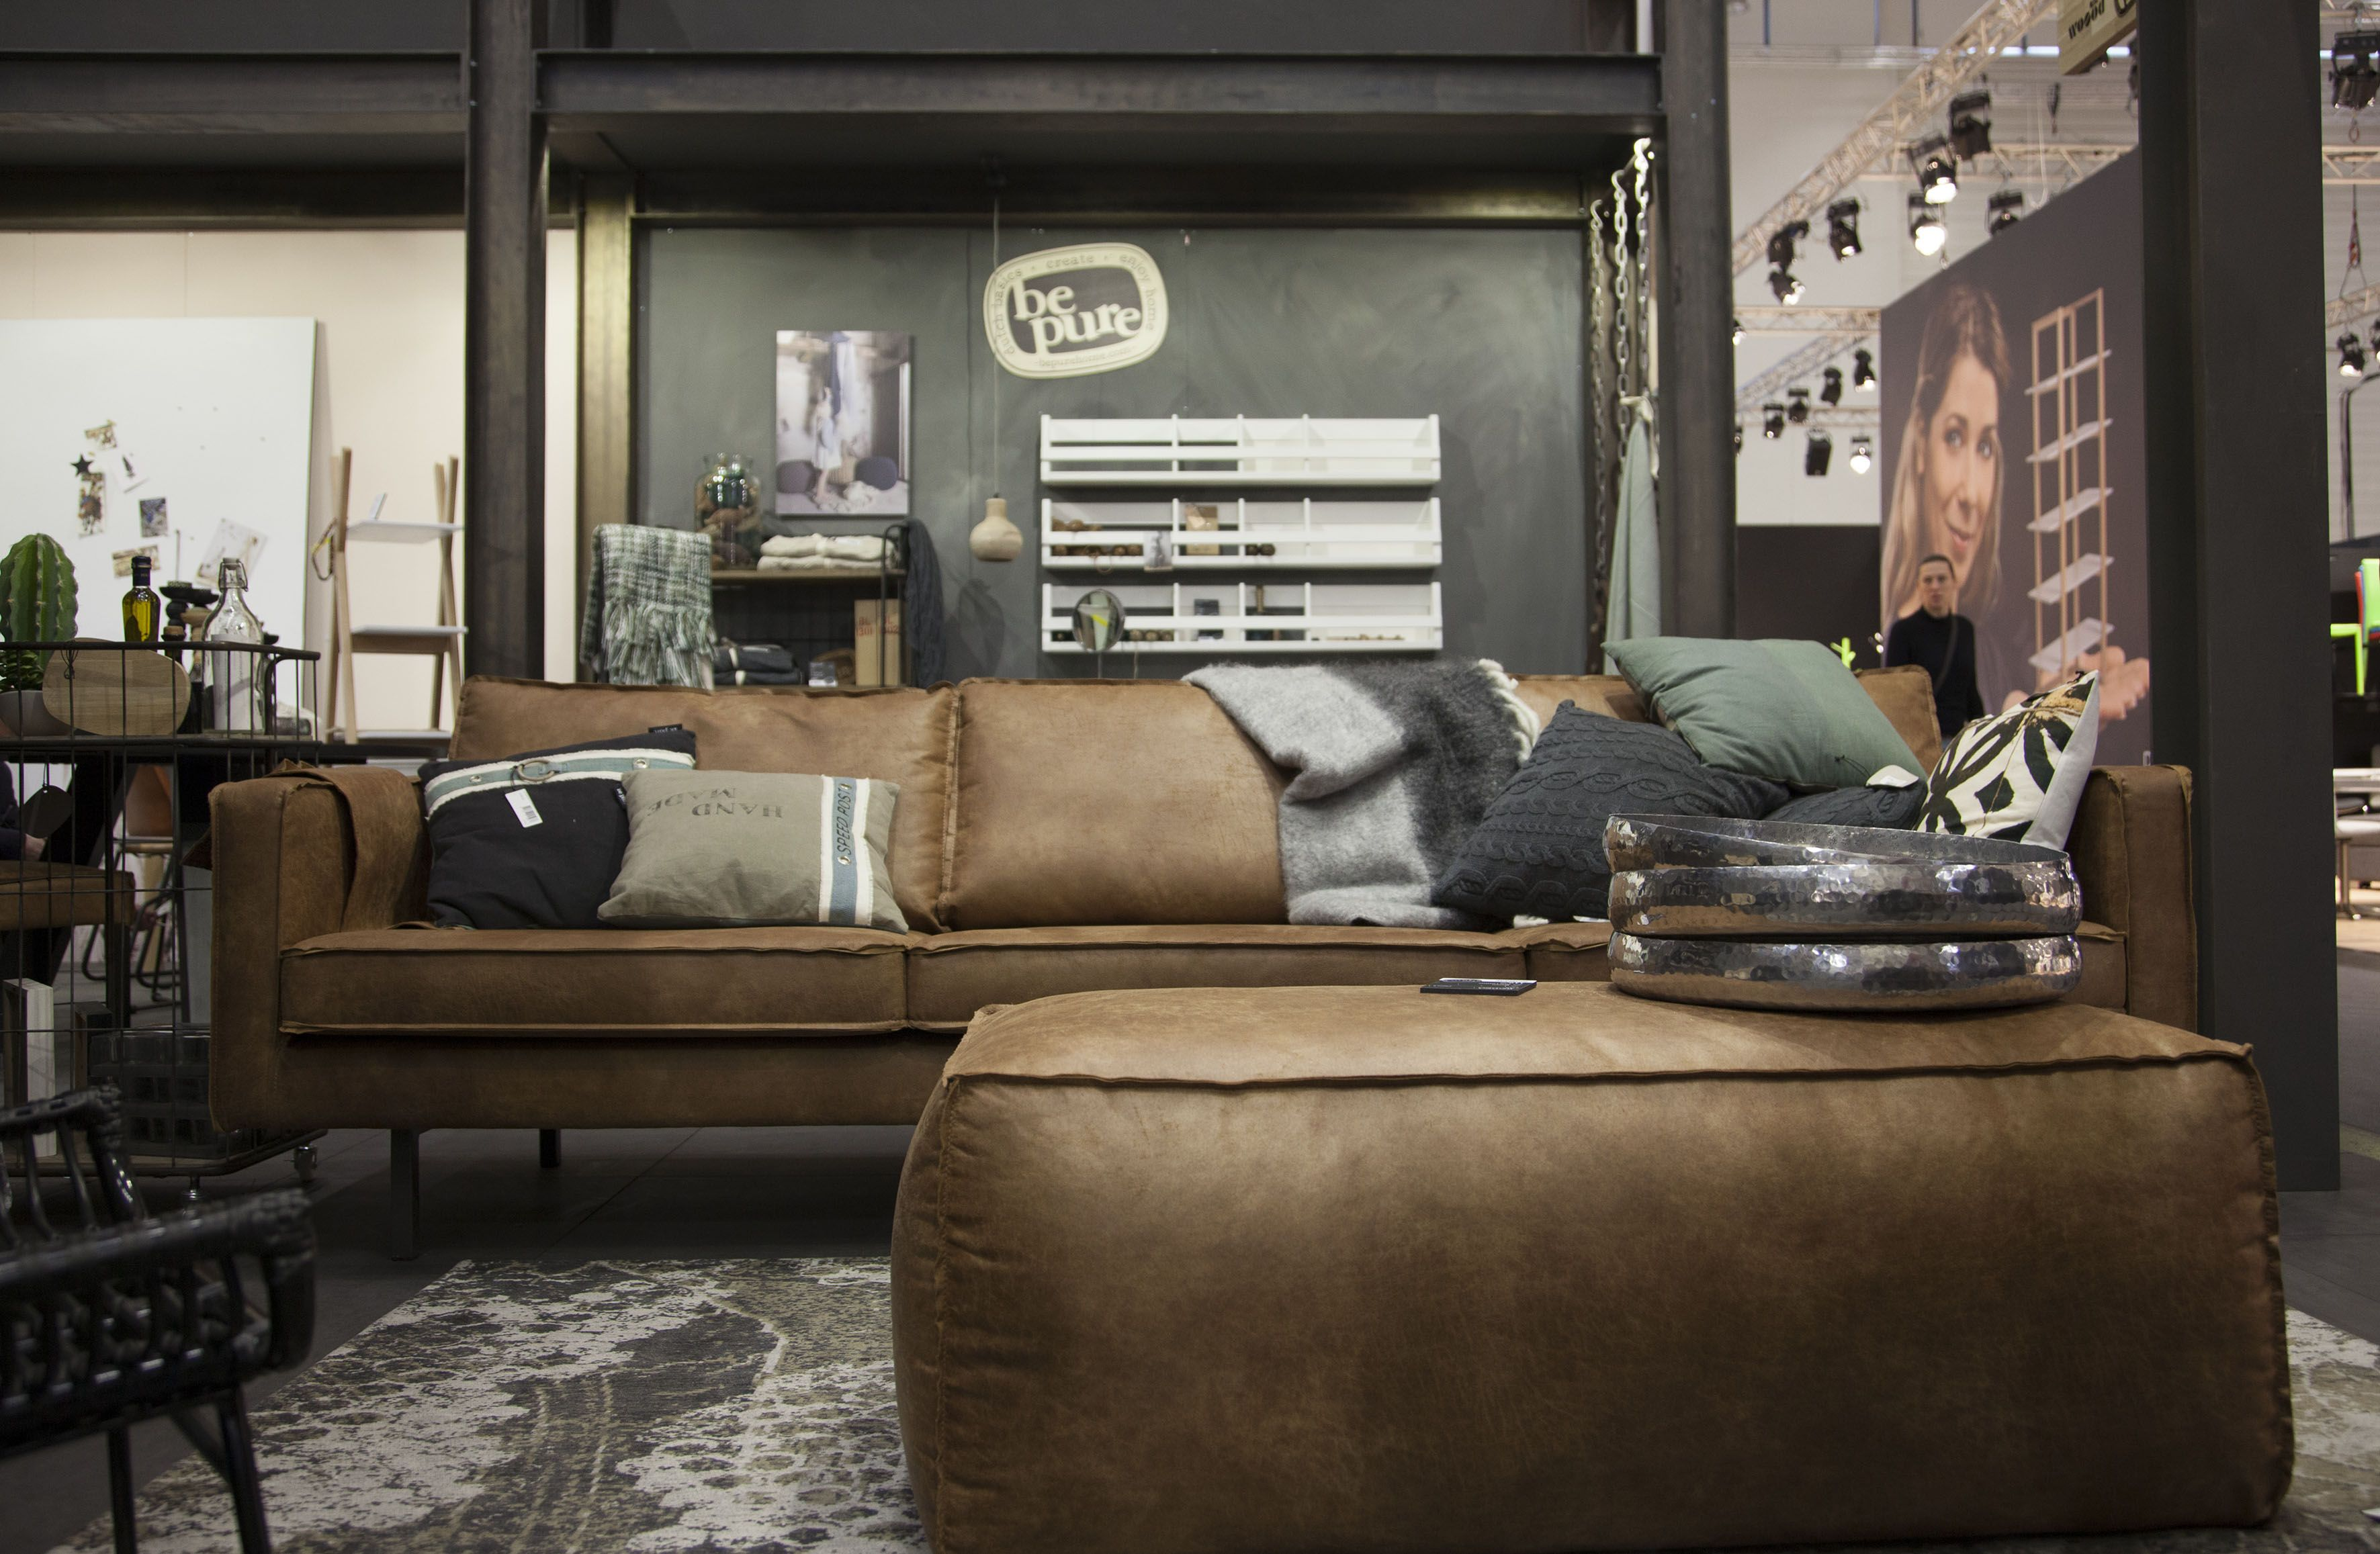 bepurehome #imm2015 #immcologne2015. our leather rodeo sofa and, Wohnzimmer dekoo